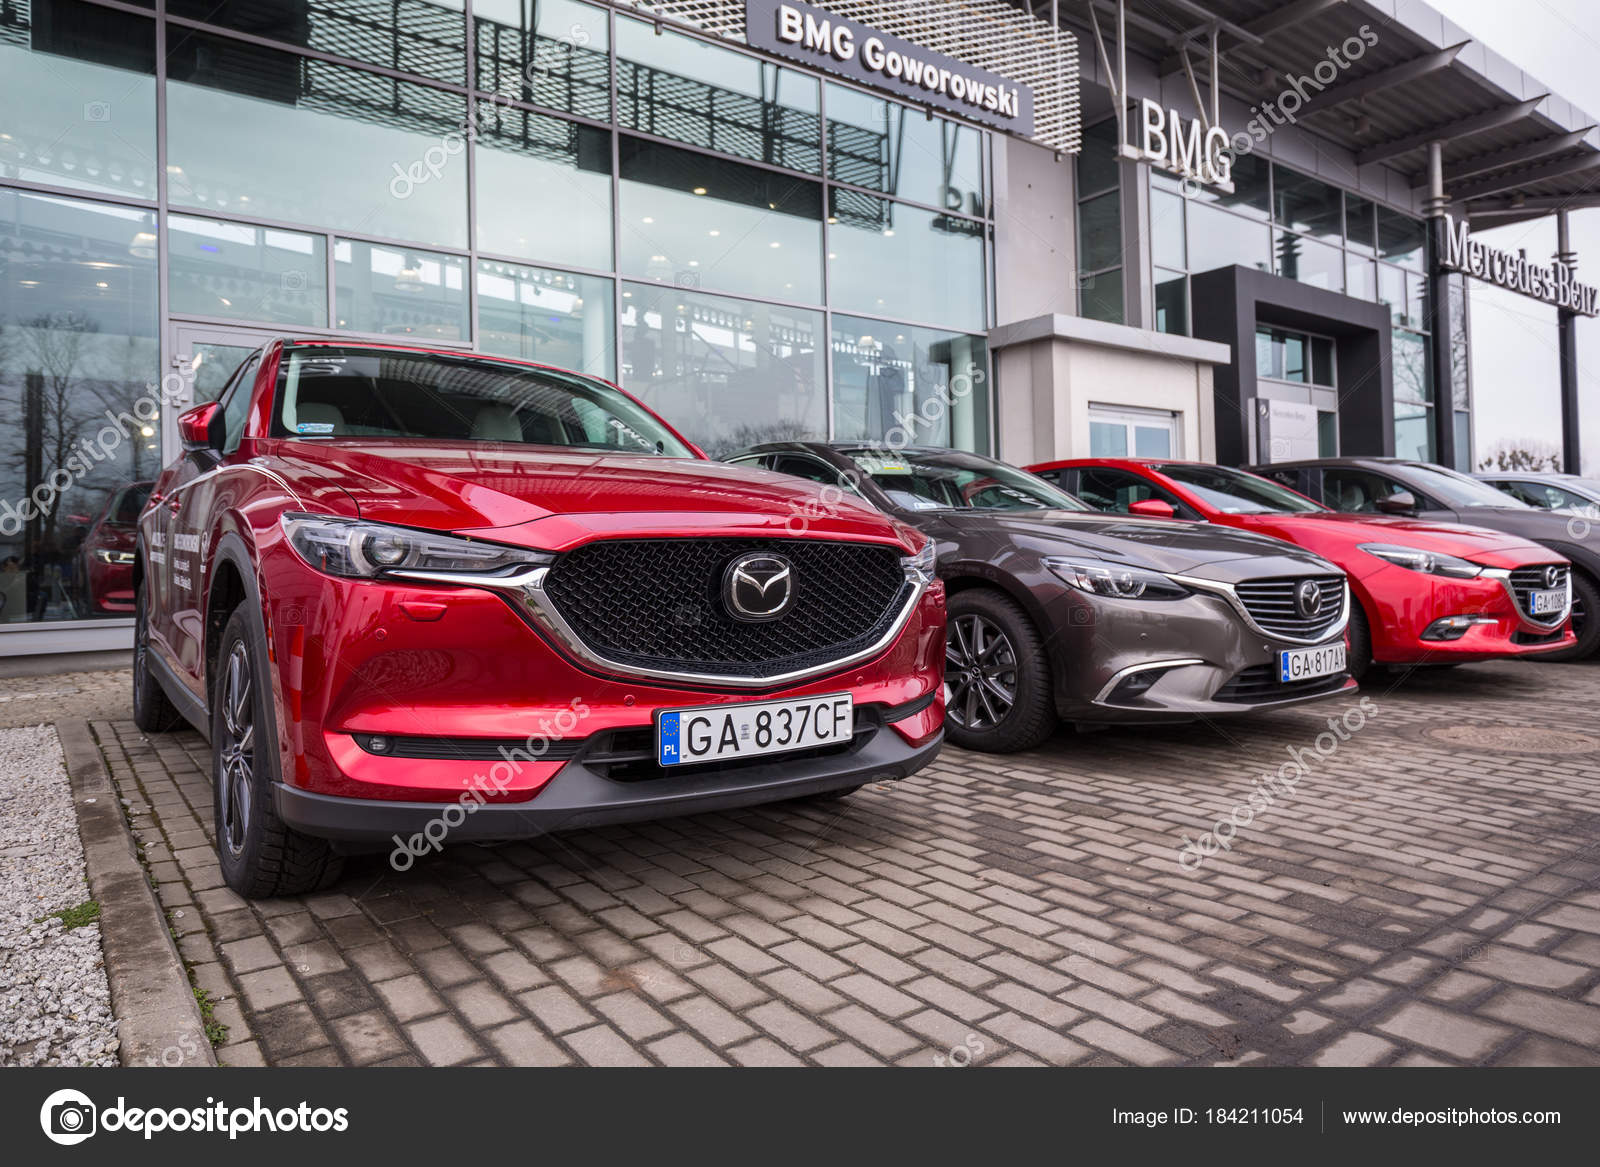 Mazda Dealerships In Georgia >> Gdansk Poland February 2018 Mazda Bmg Goworowski Car